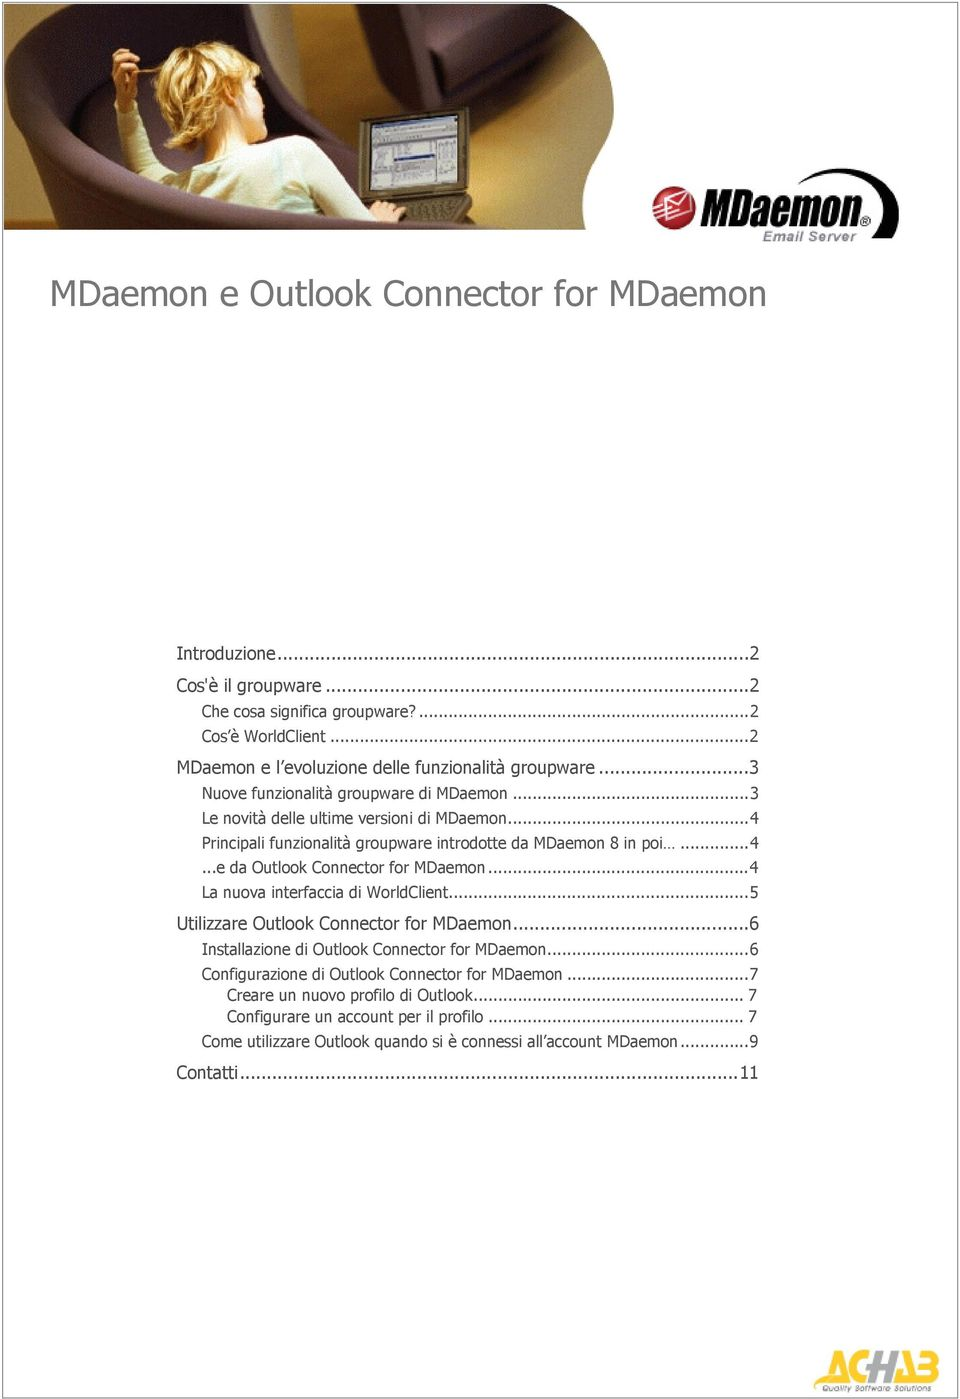 ..4 La nuova interfaccia di WorldClient...5 Utilizzare Outlook Connector for MDaemon...6 Installazione di Outlook Connector for MDaemon...6 Configurazione di Outlook Connector for MDaemon.